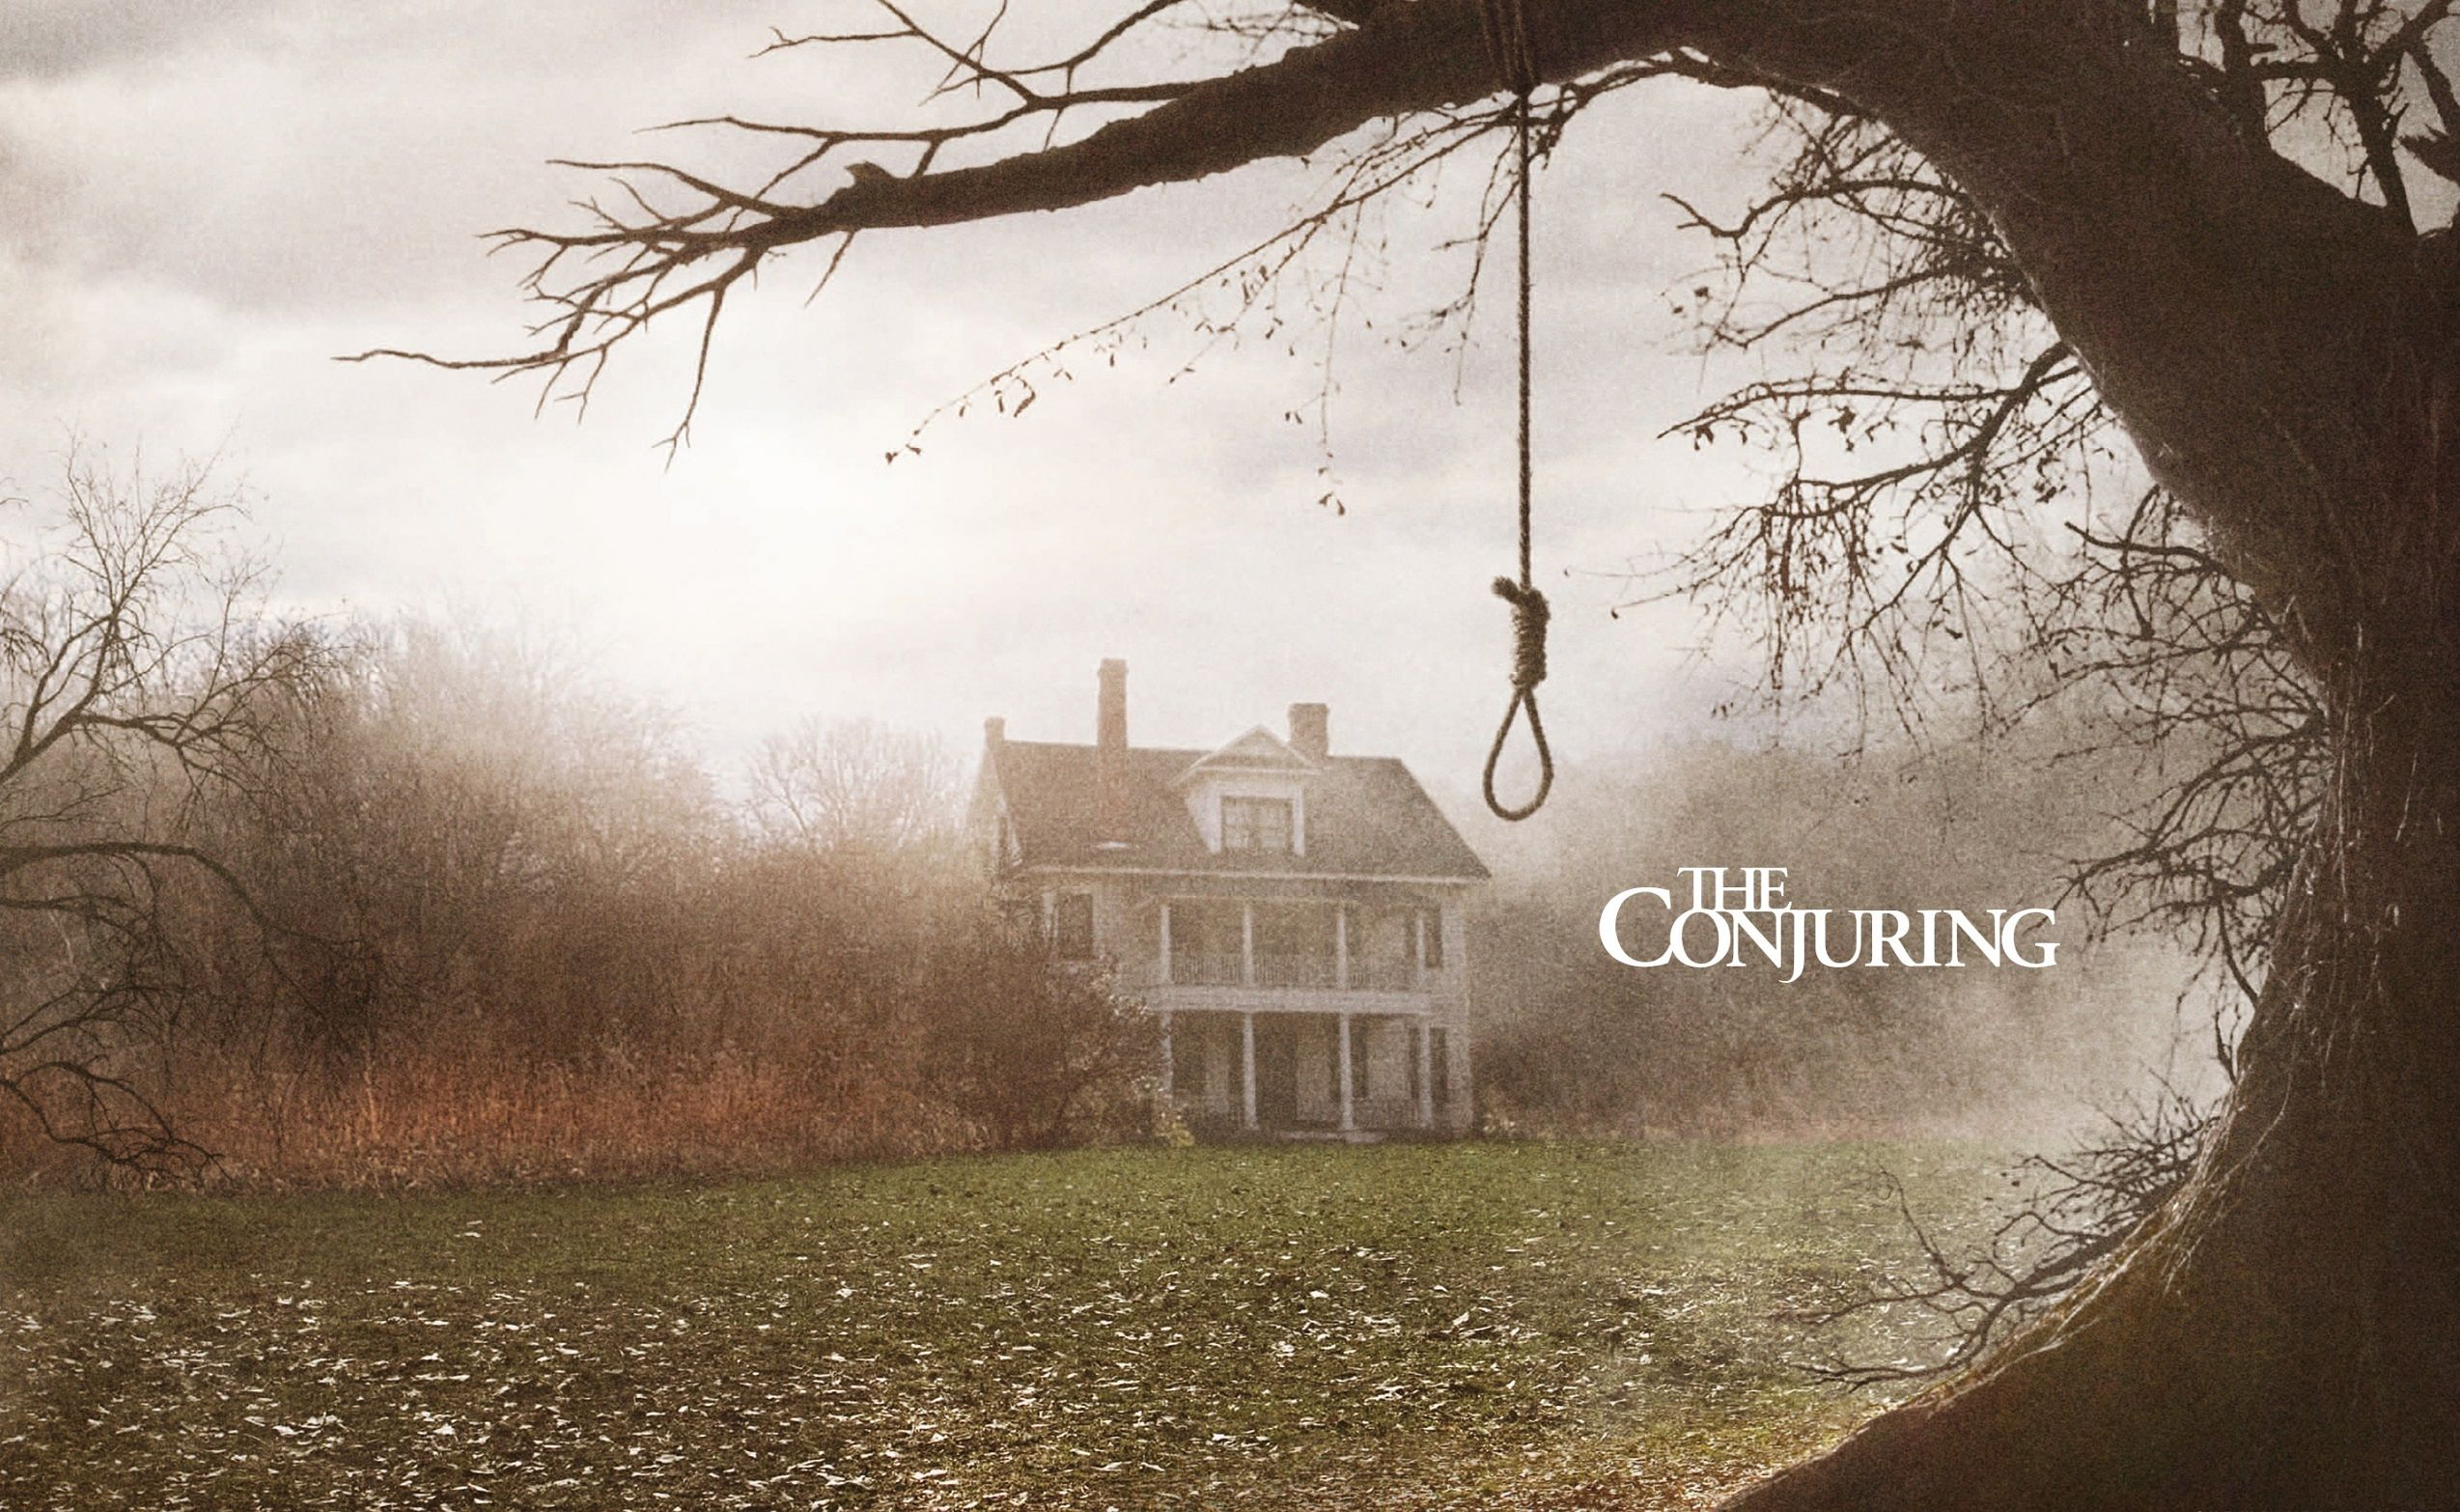 the-conjuring-hd-wallpaper-is-the-conjuring-2-based-on-one-of-these-terrifying-true-poltergeist-stories-jpeg-250740